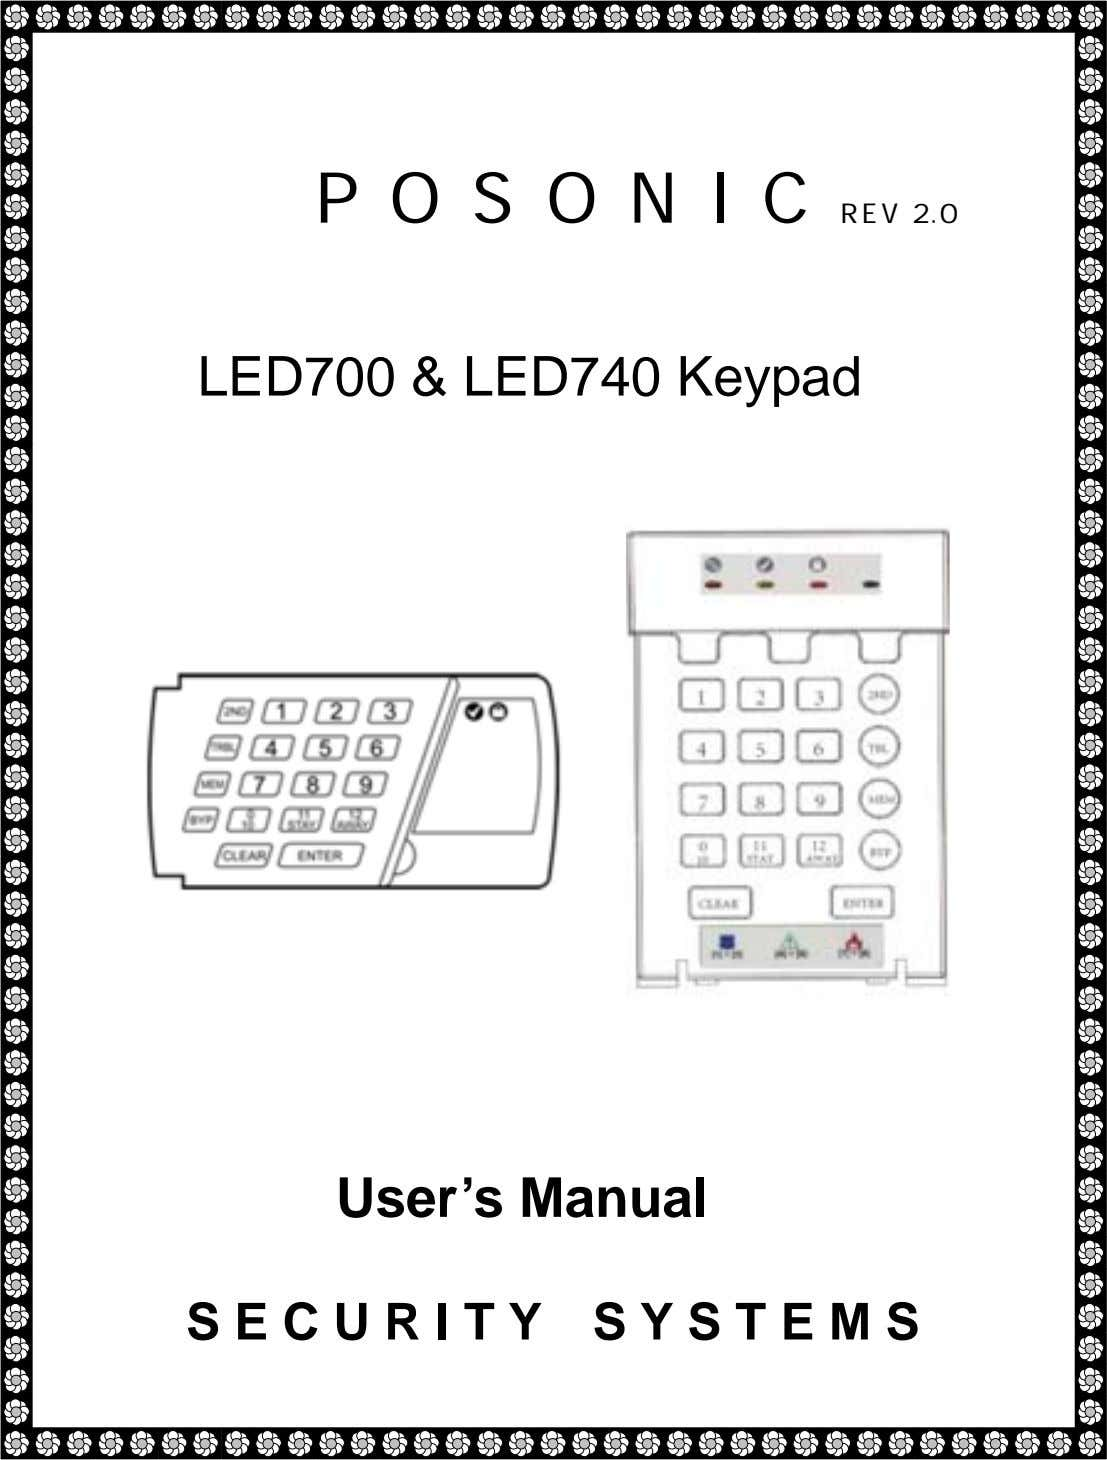 P O S O N I C REV 2.0 LED700 & LED740 Keypad User's Manual